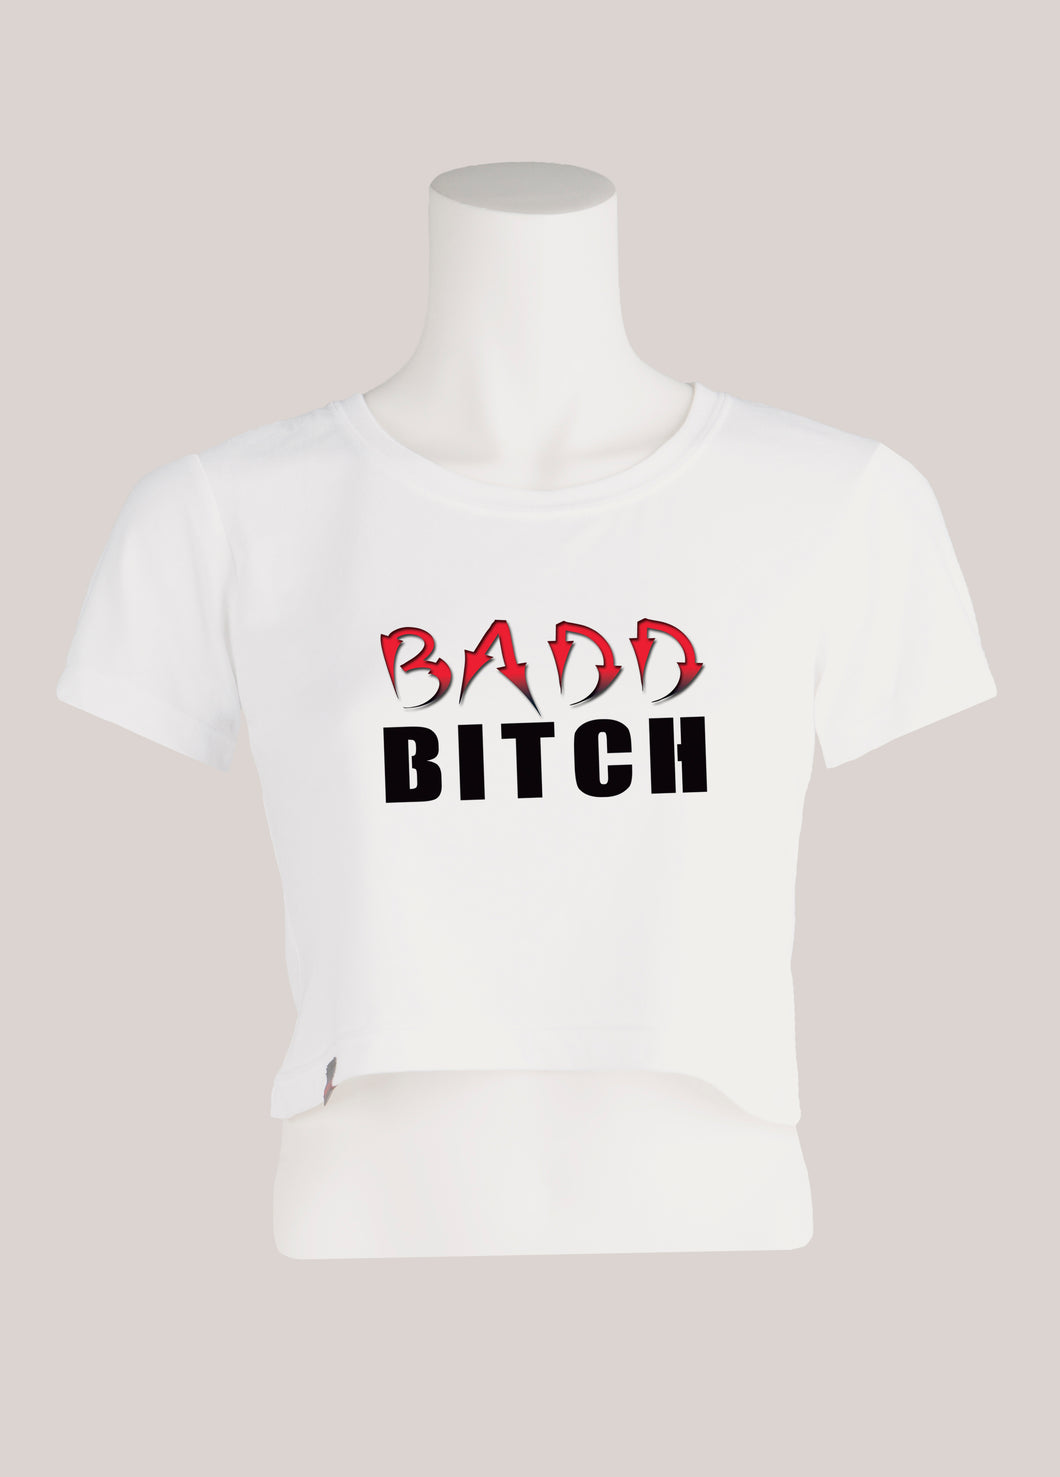 BADD BITCH Women's Cropped T-Shirt